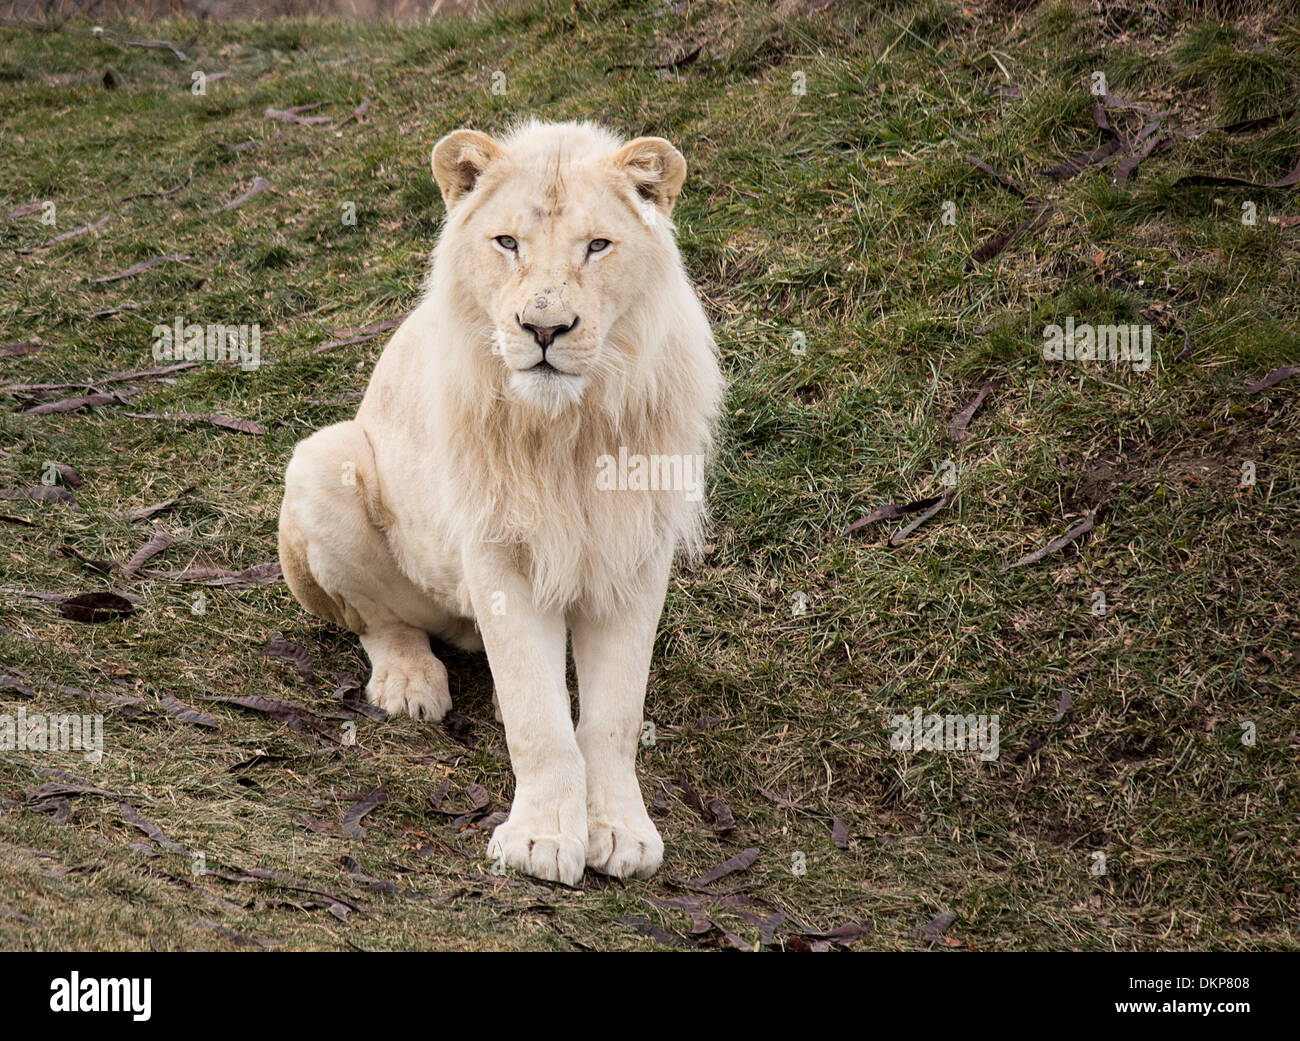 Panthera leo krugeri Male white lion looking up at the camera at the Toronto Zoo - Stock Image